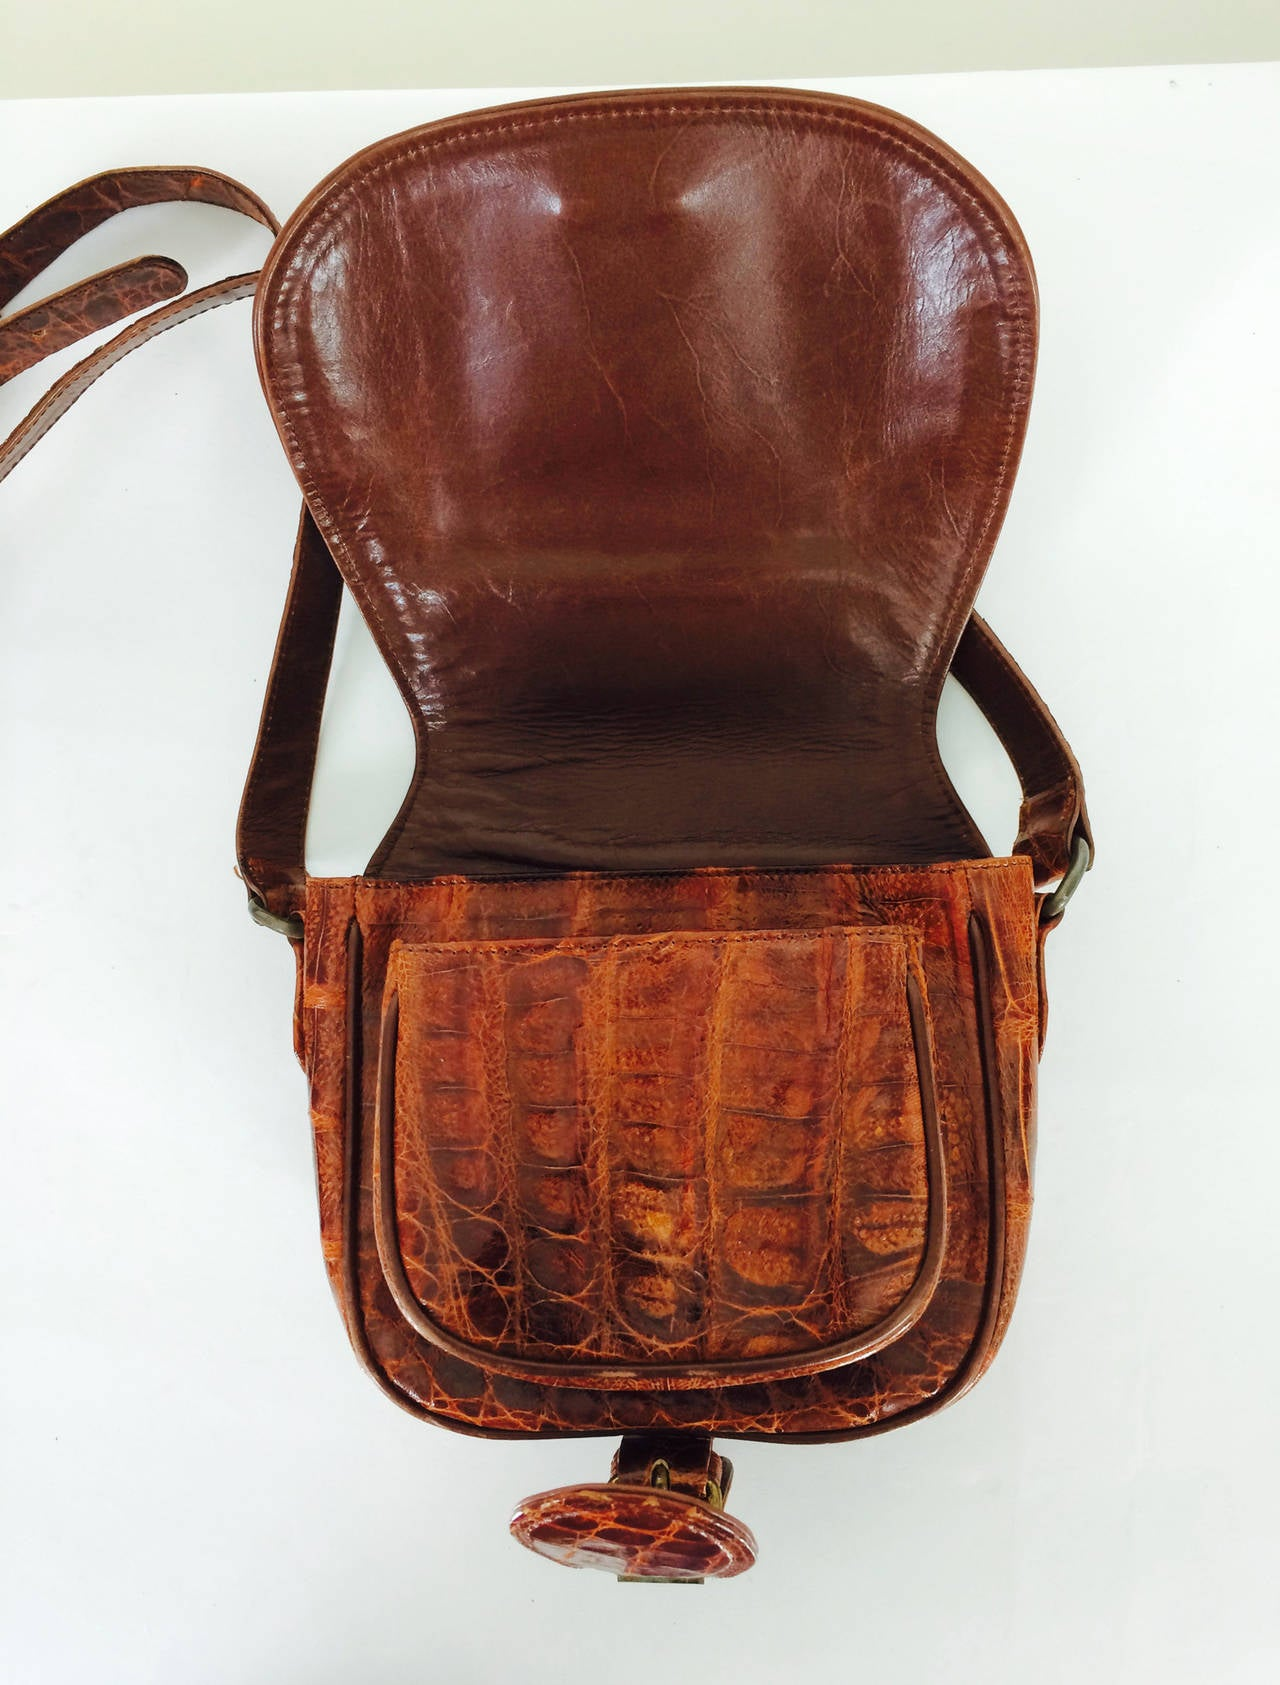 Saddle bag handbag cognac leather faux alligator Neiman Marcus 1980s 5